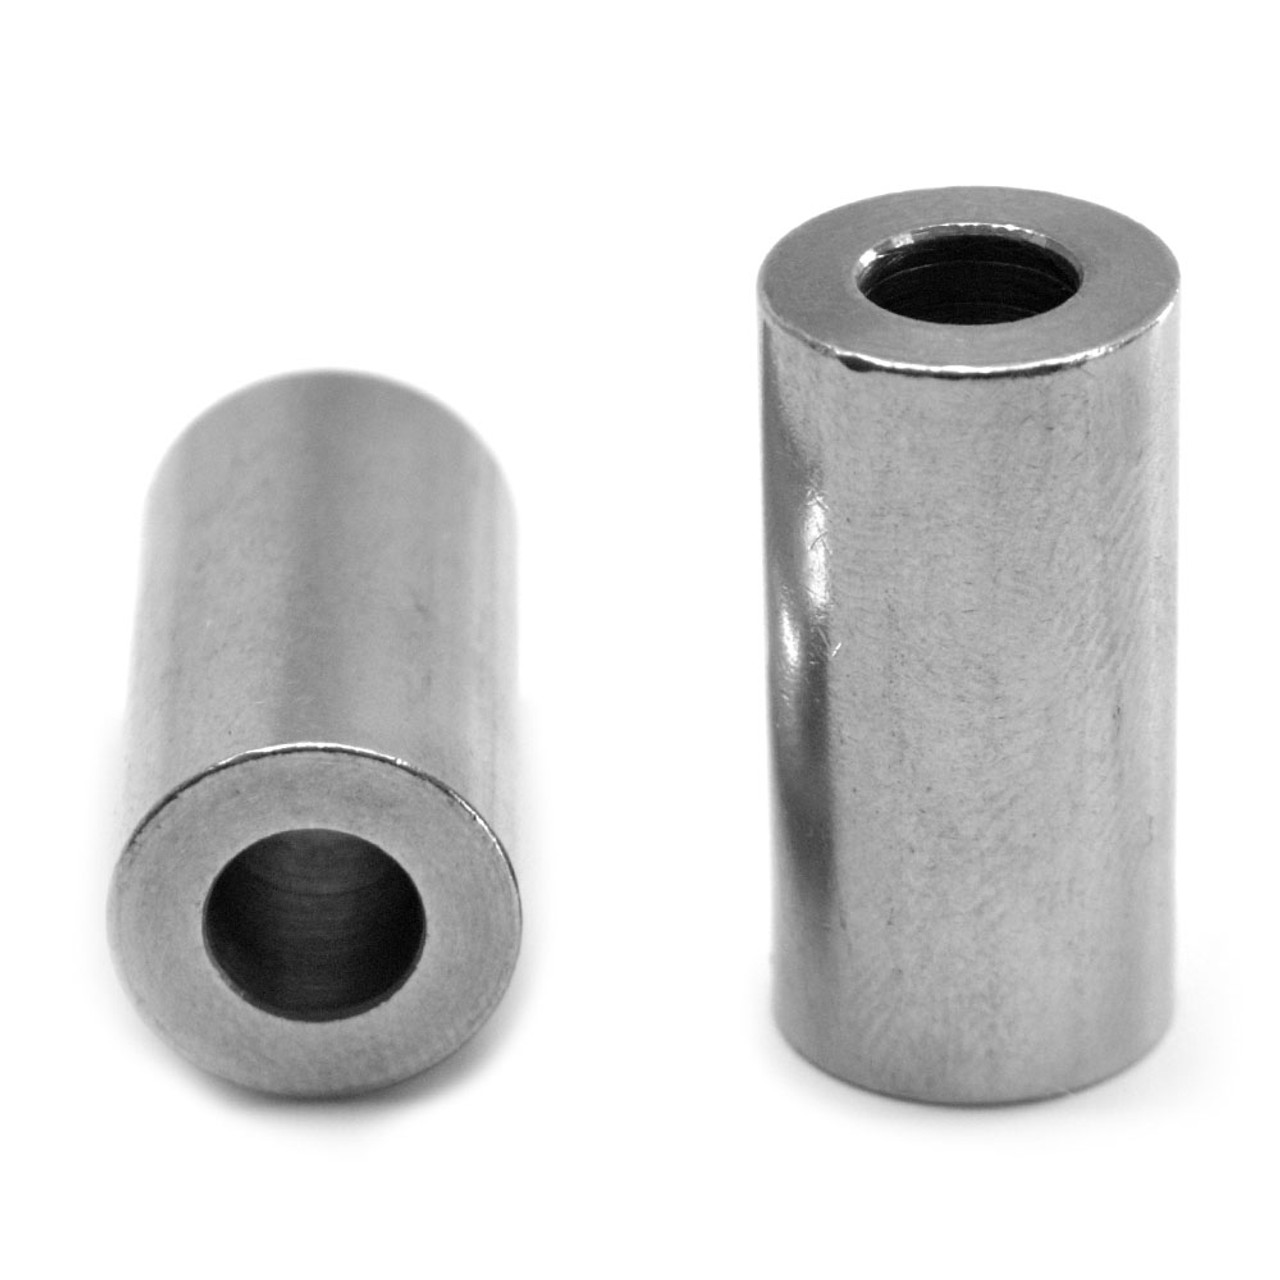 "#10 x 1/8 (1/2"") Round Spacer Stainless Steel 18-8"